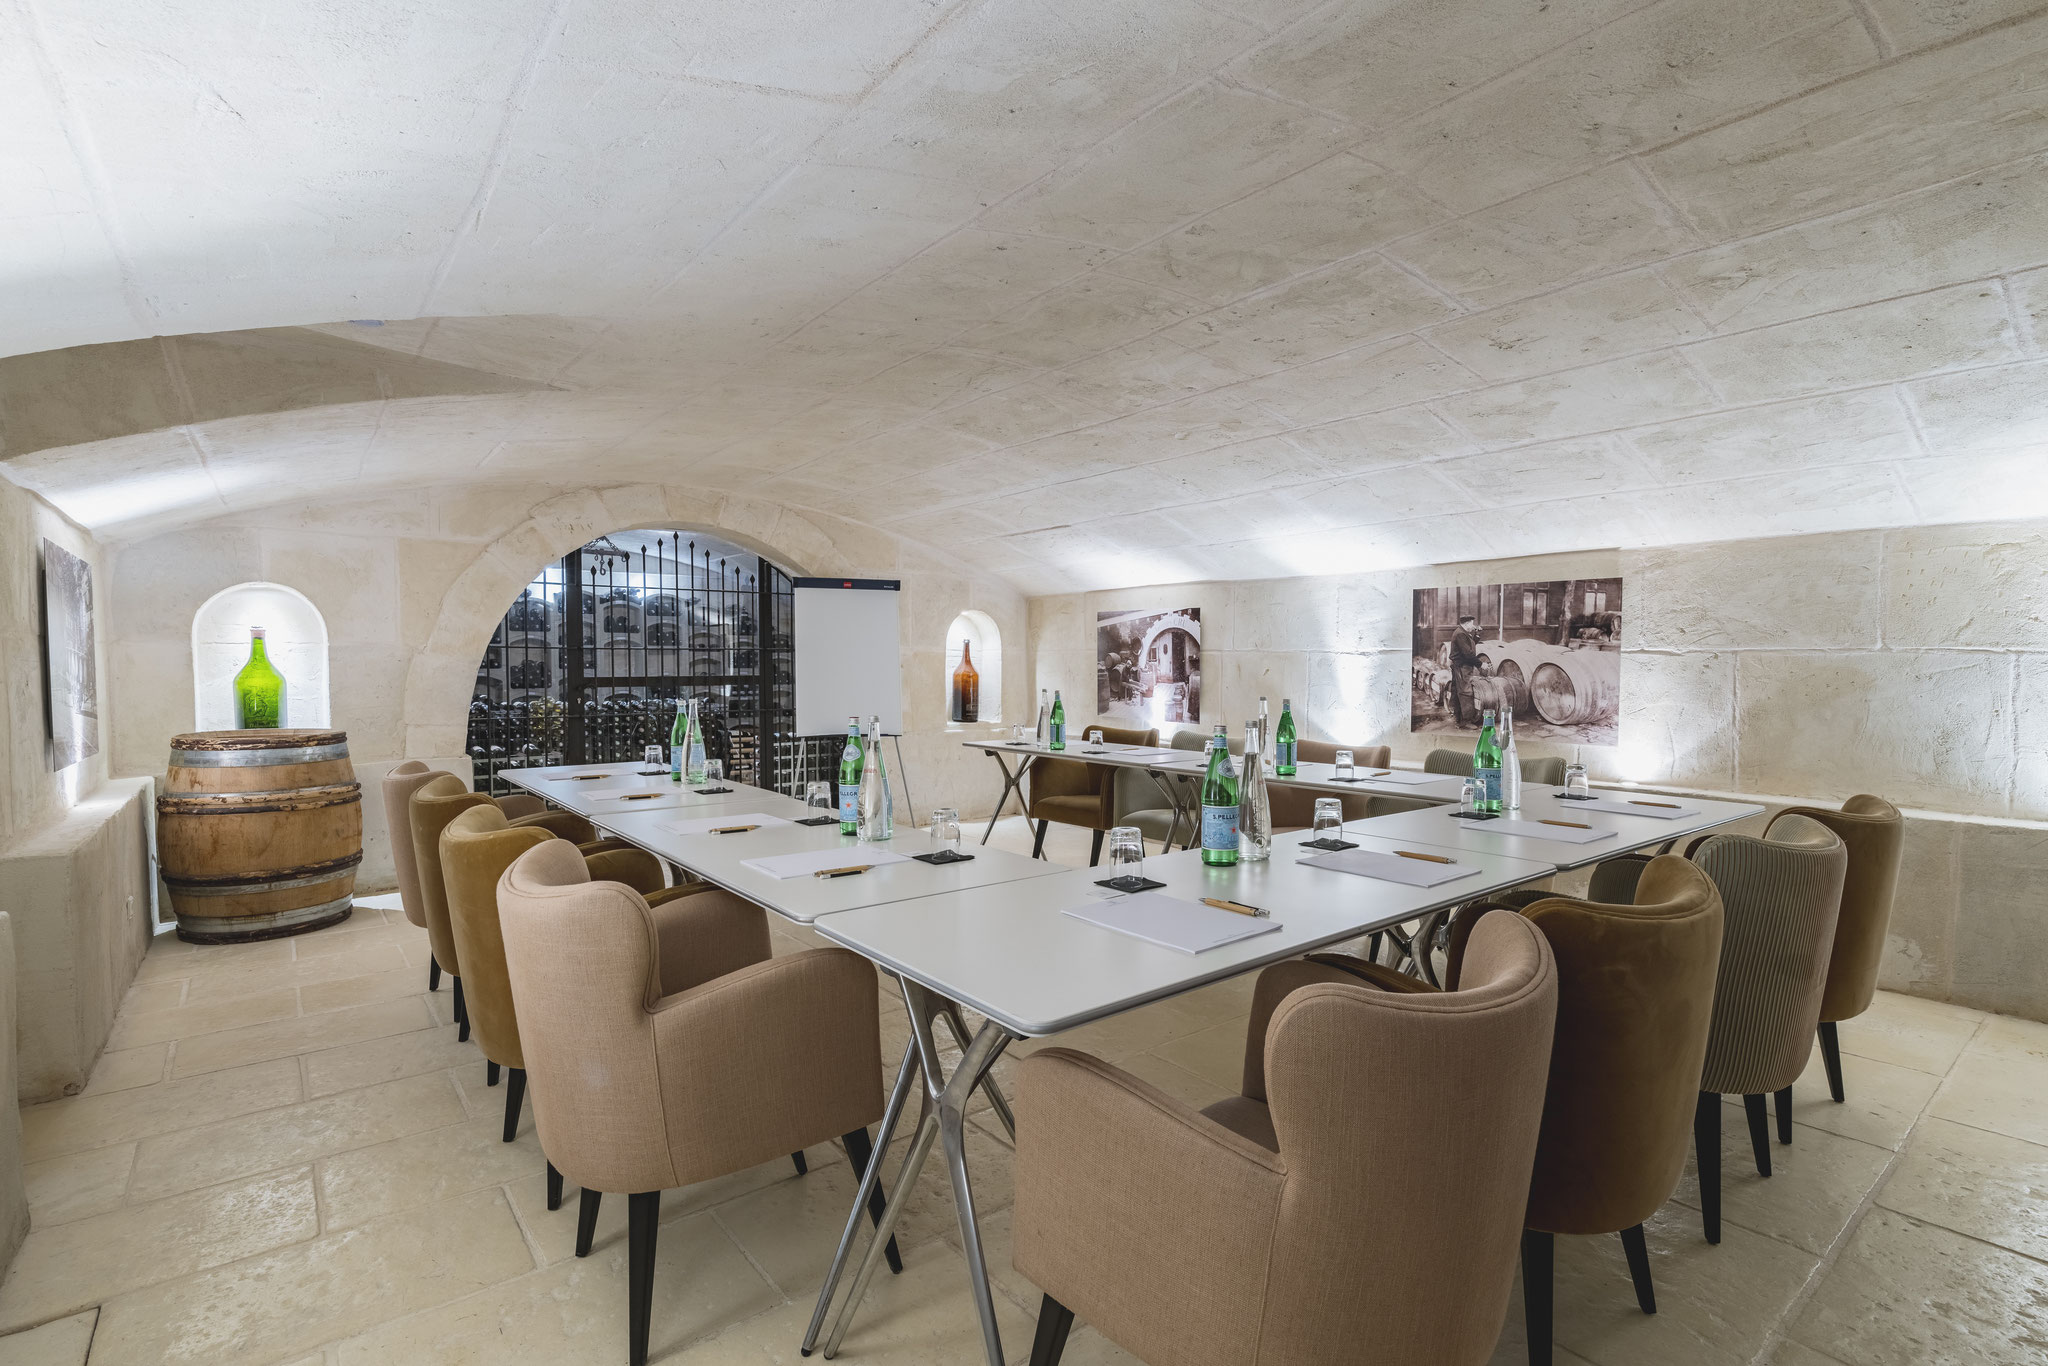 Meetings spaces of Hameau des Baux